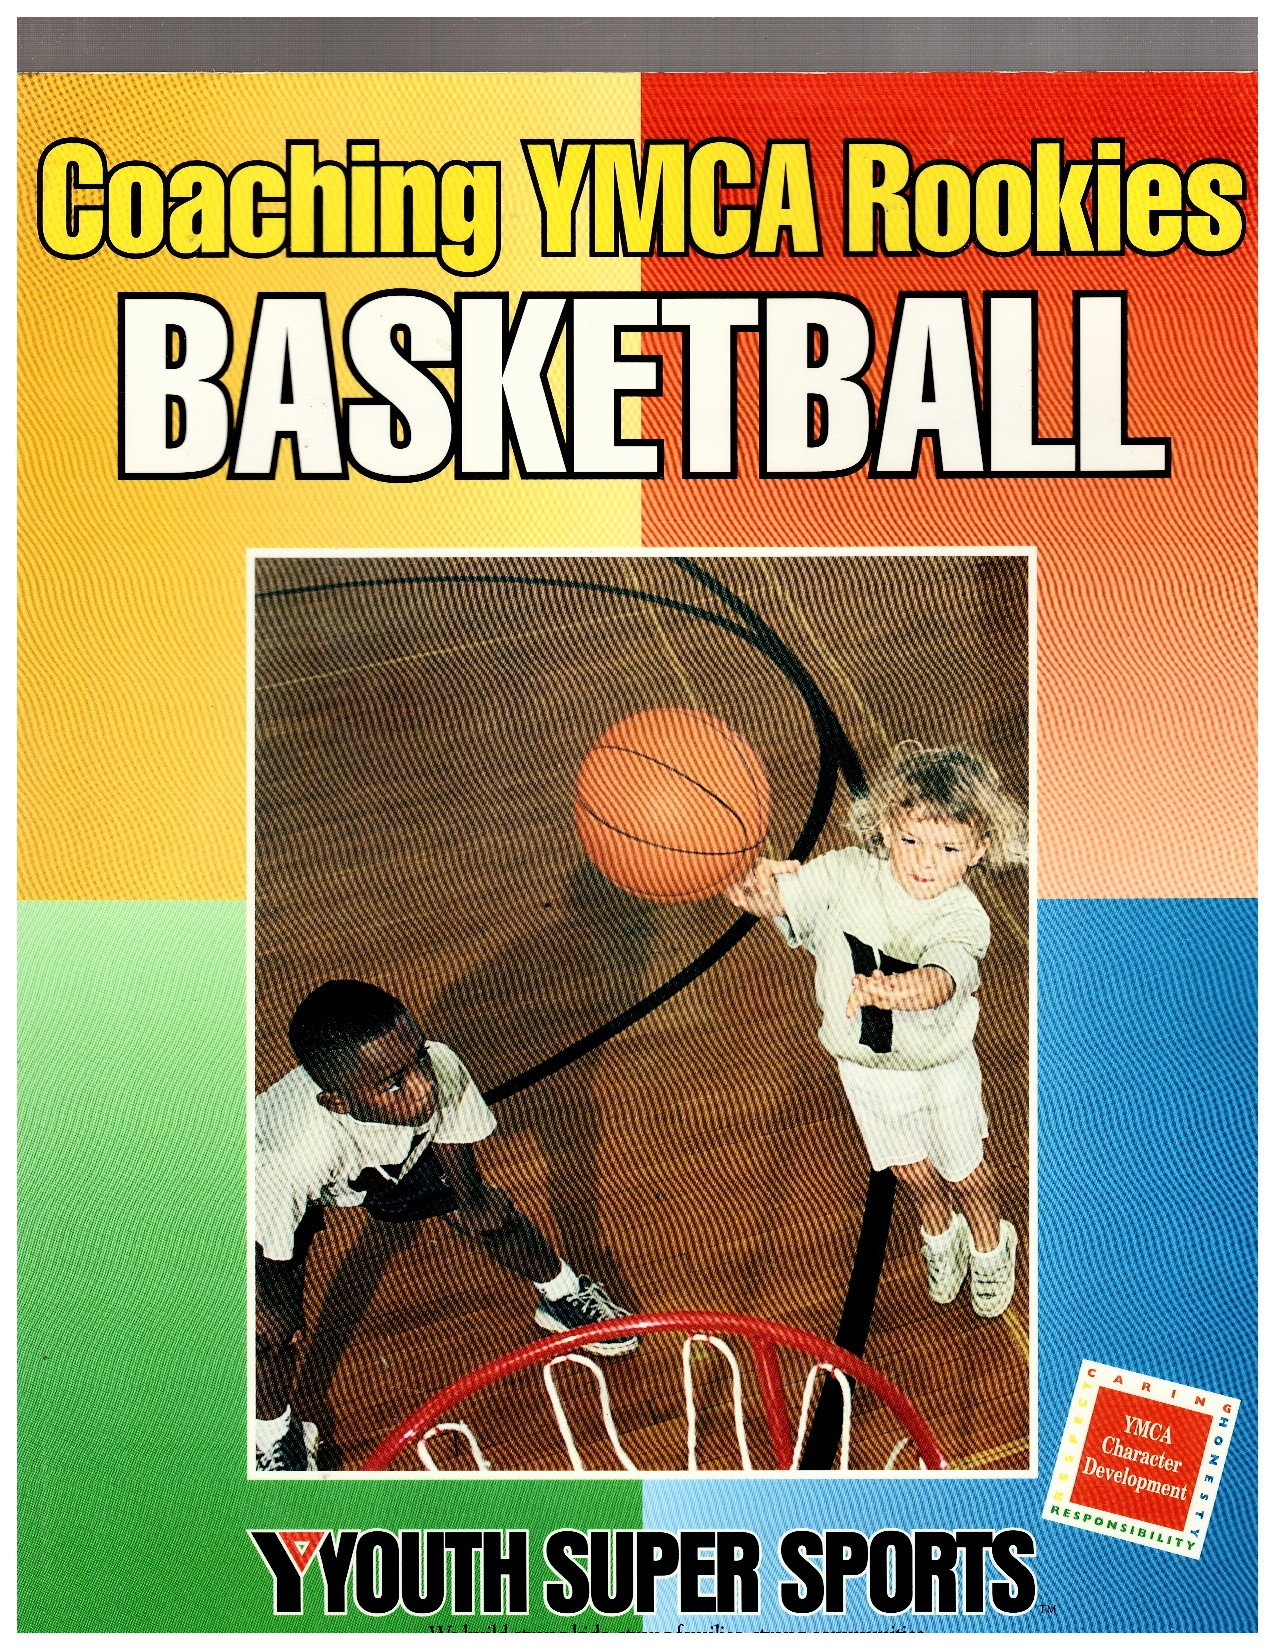 Coaching YMCA Rookies Basketball